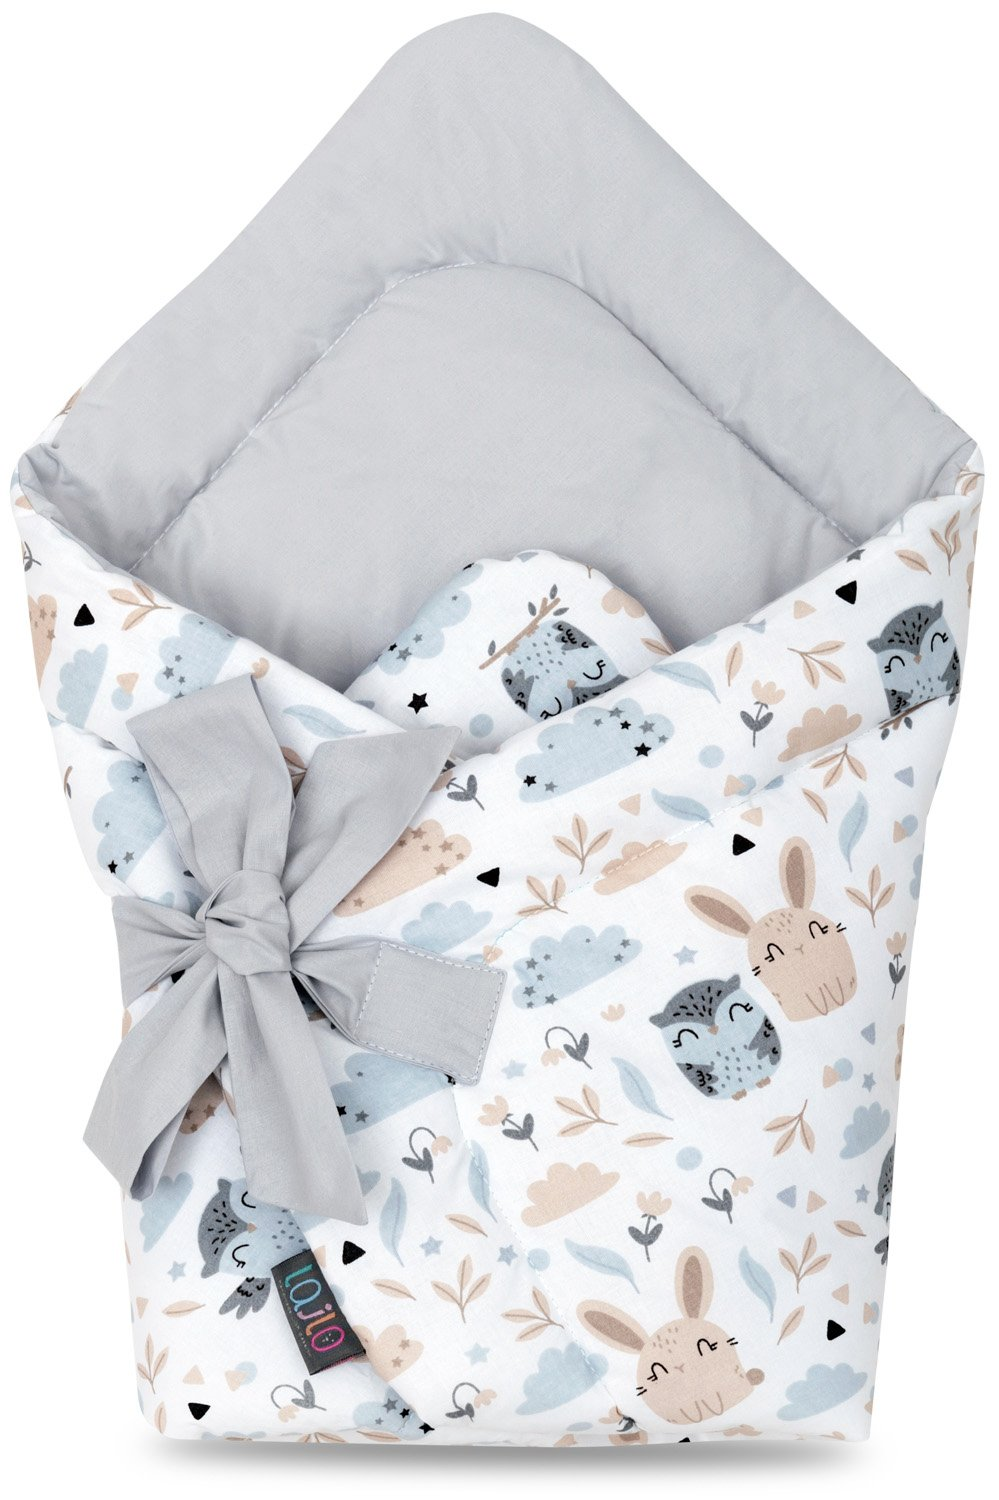 ANIMALS SWADDLE BLANKET